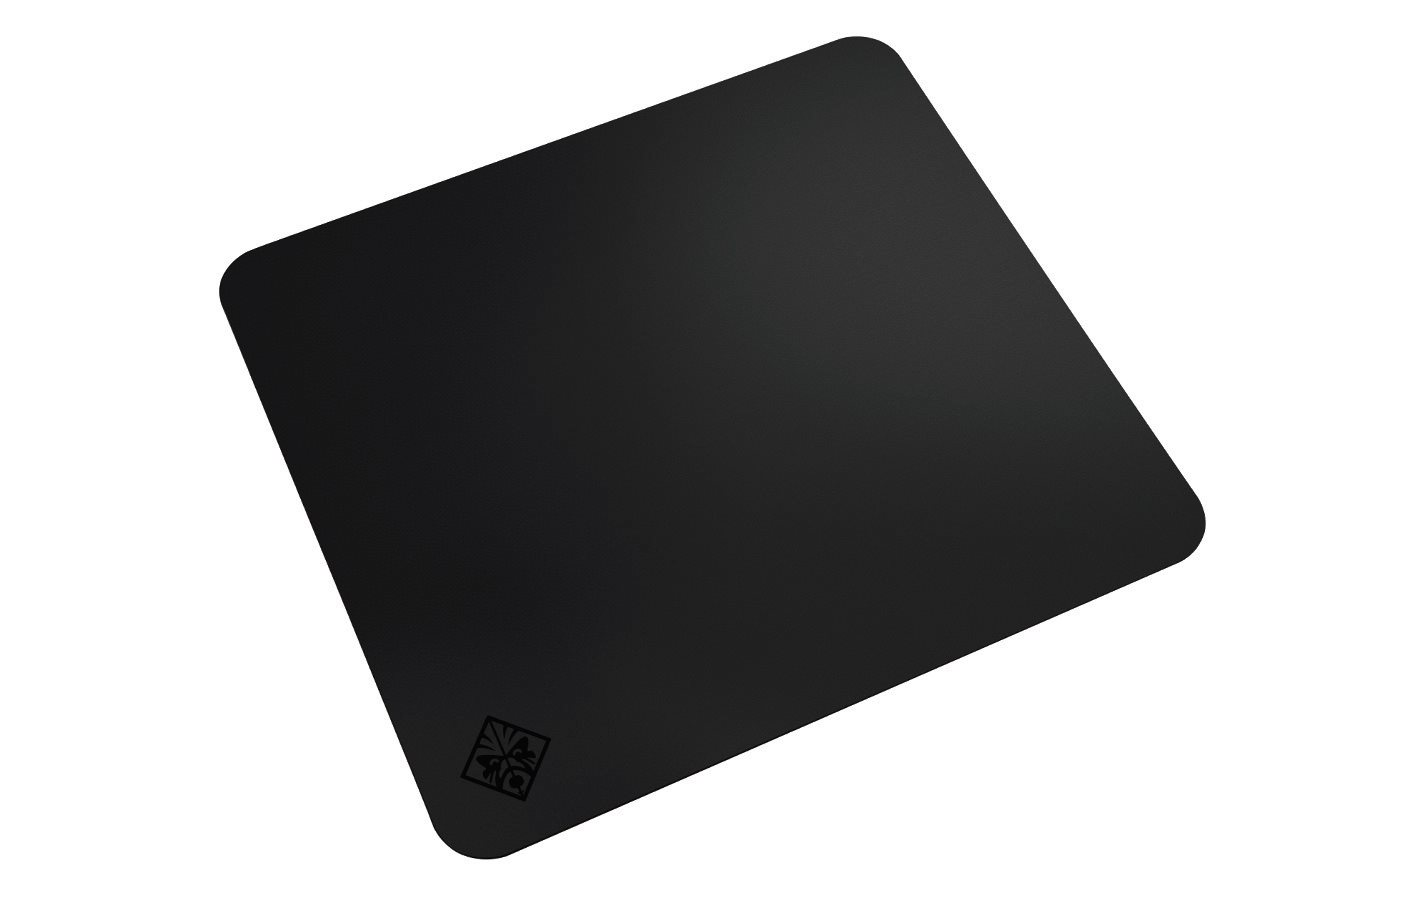 HP Omen Mouse Pad with SteelSeries - MOUSEPAD